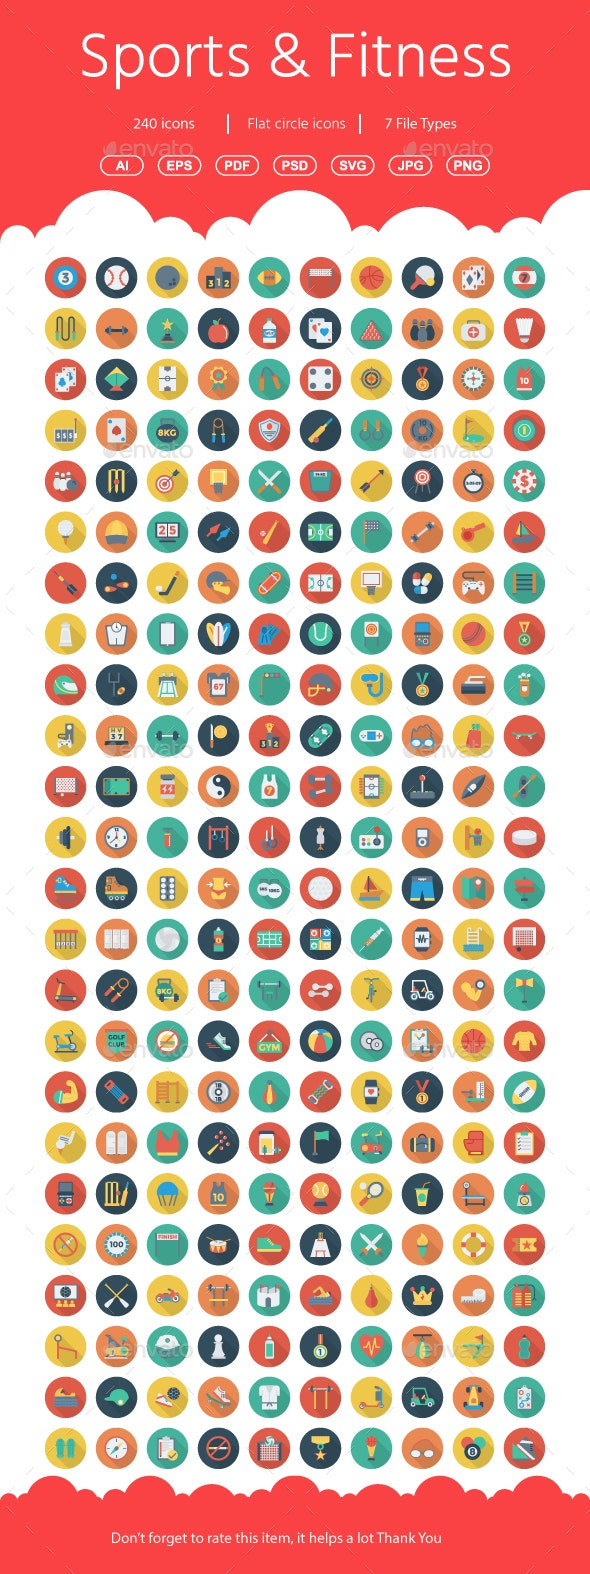 Sports and Fitness Flat Circle icons